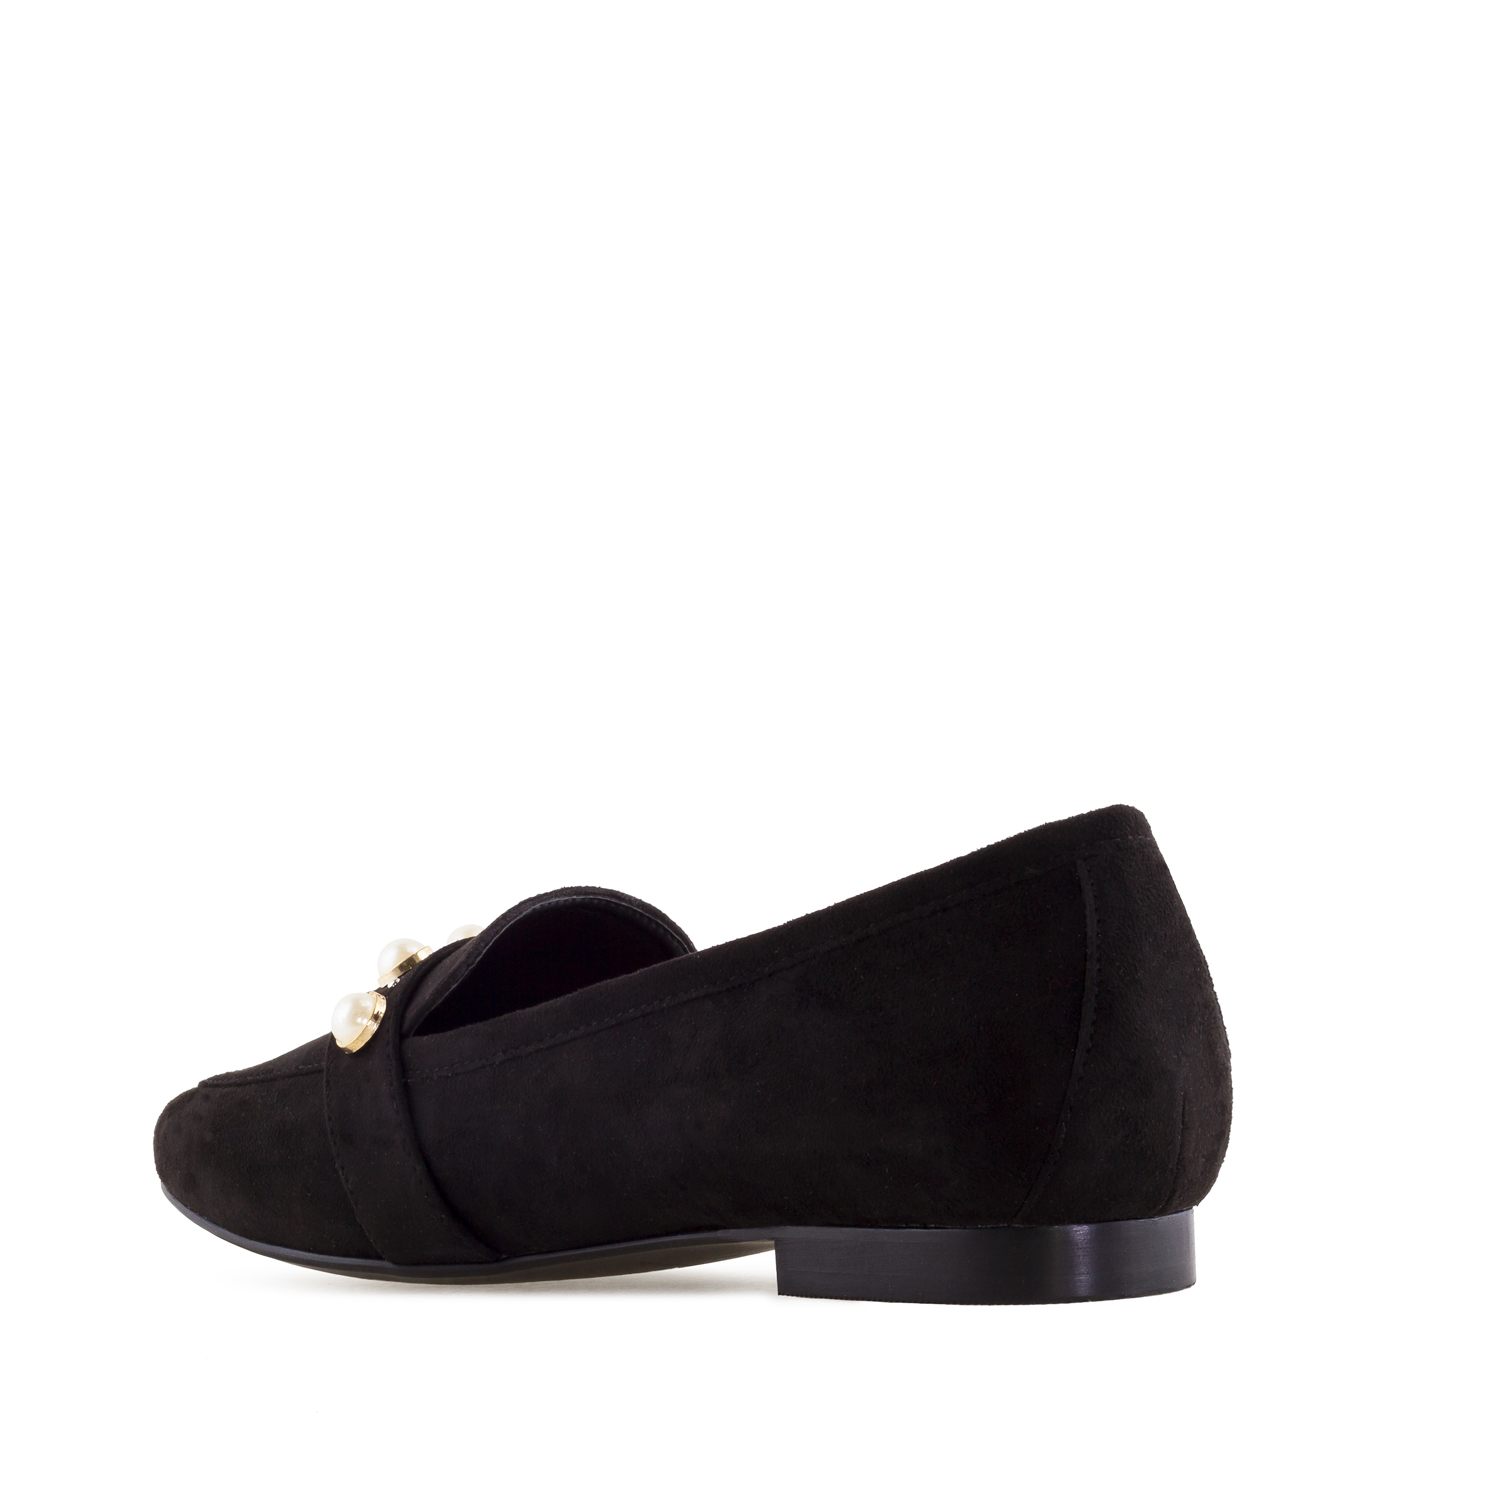 Pearl Slipper Shoes in Black Suede